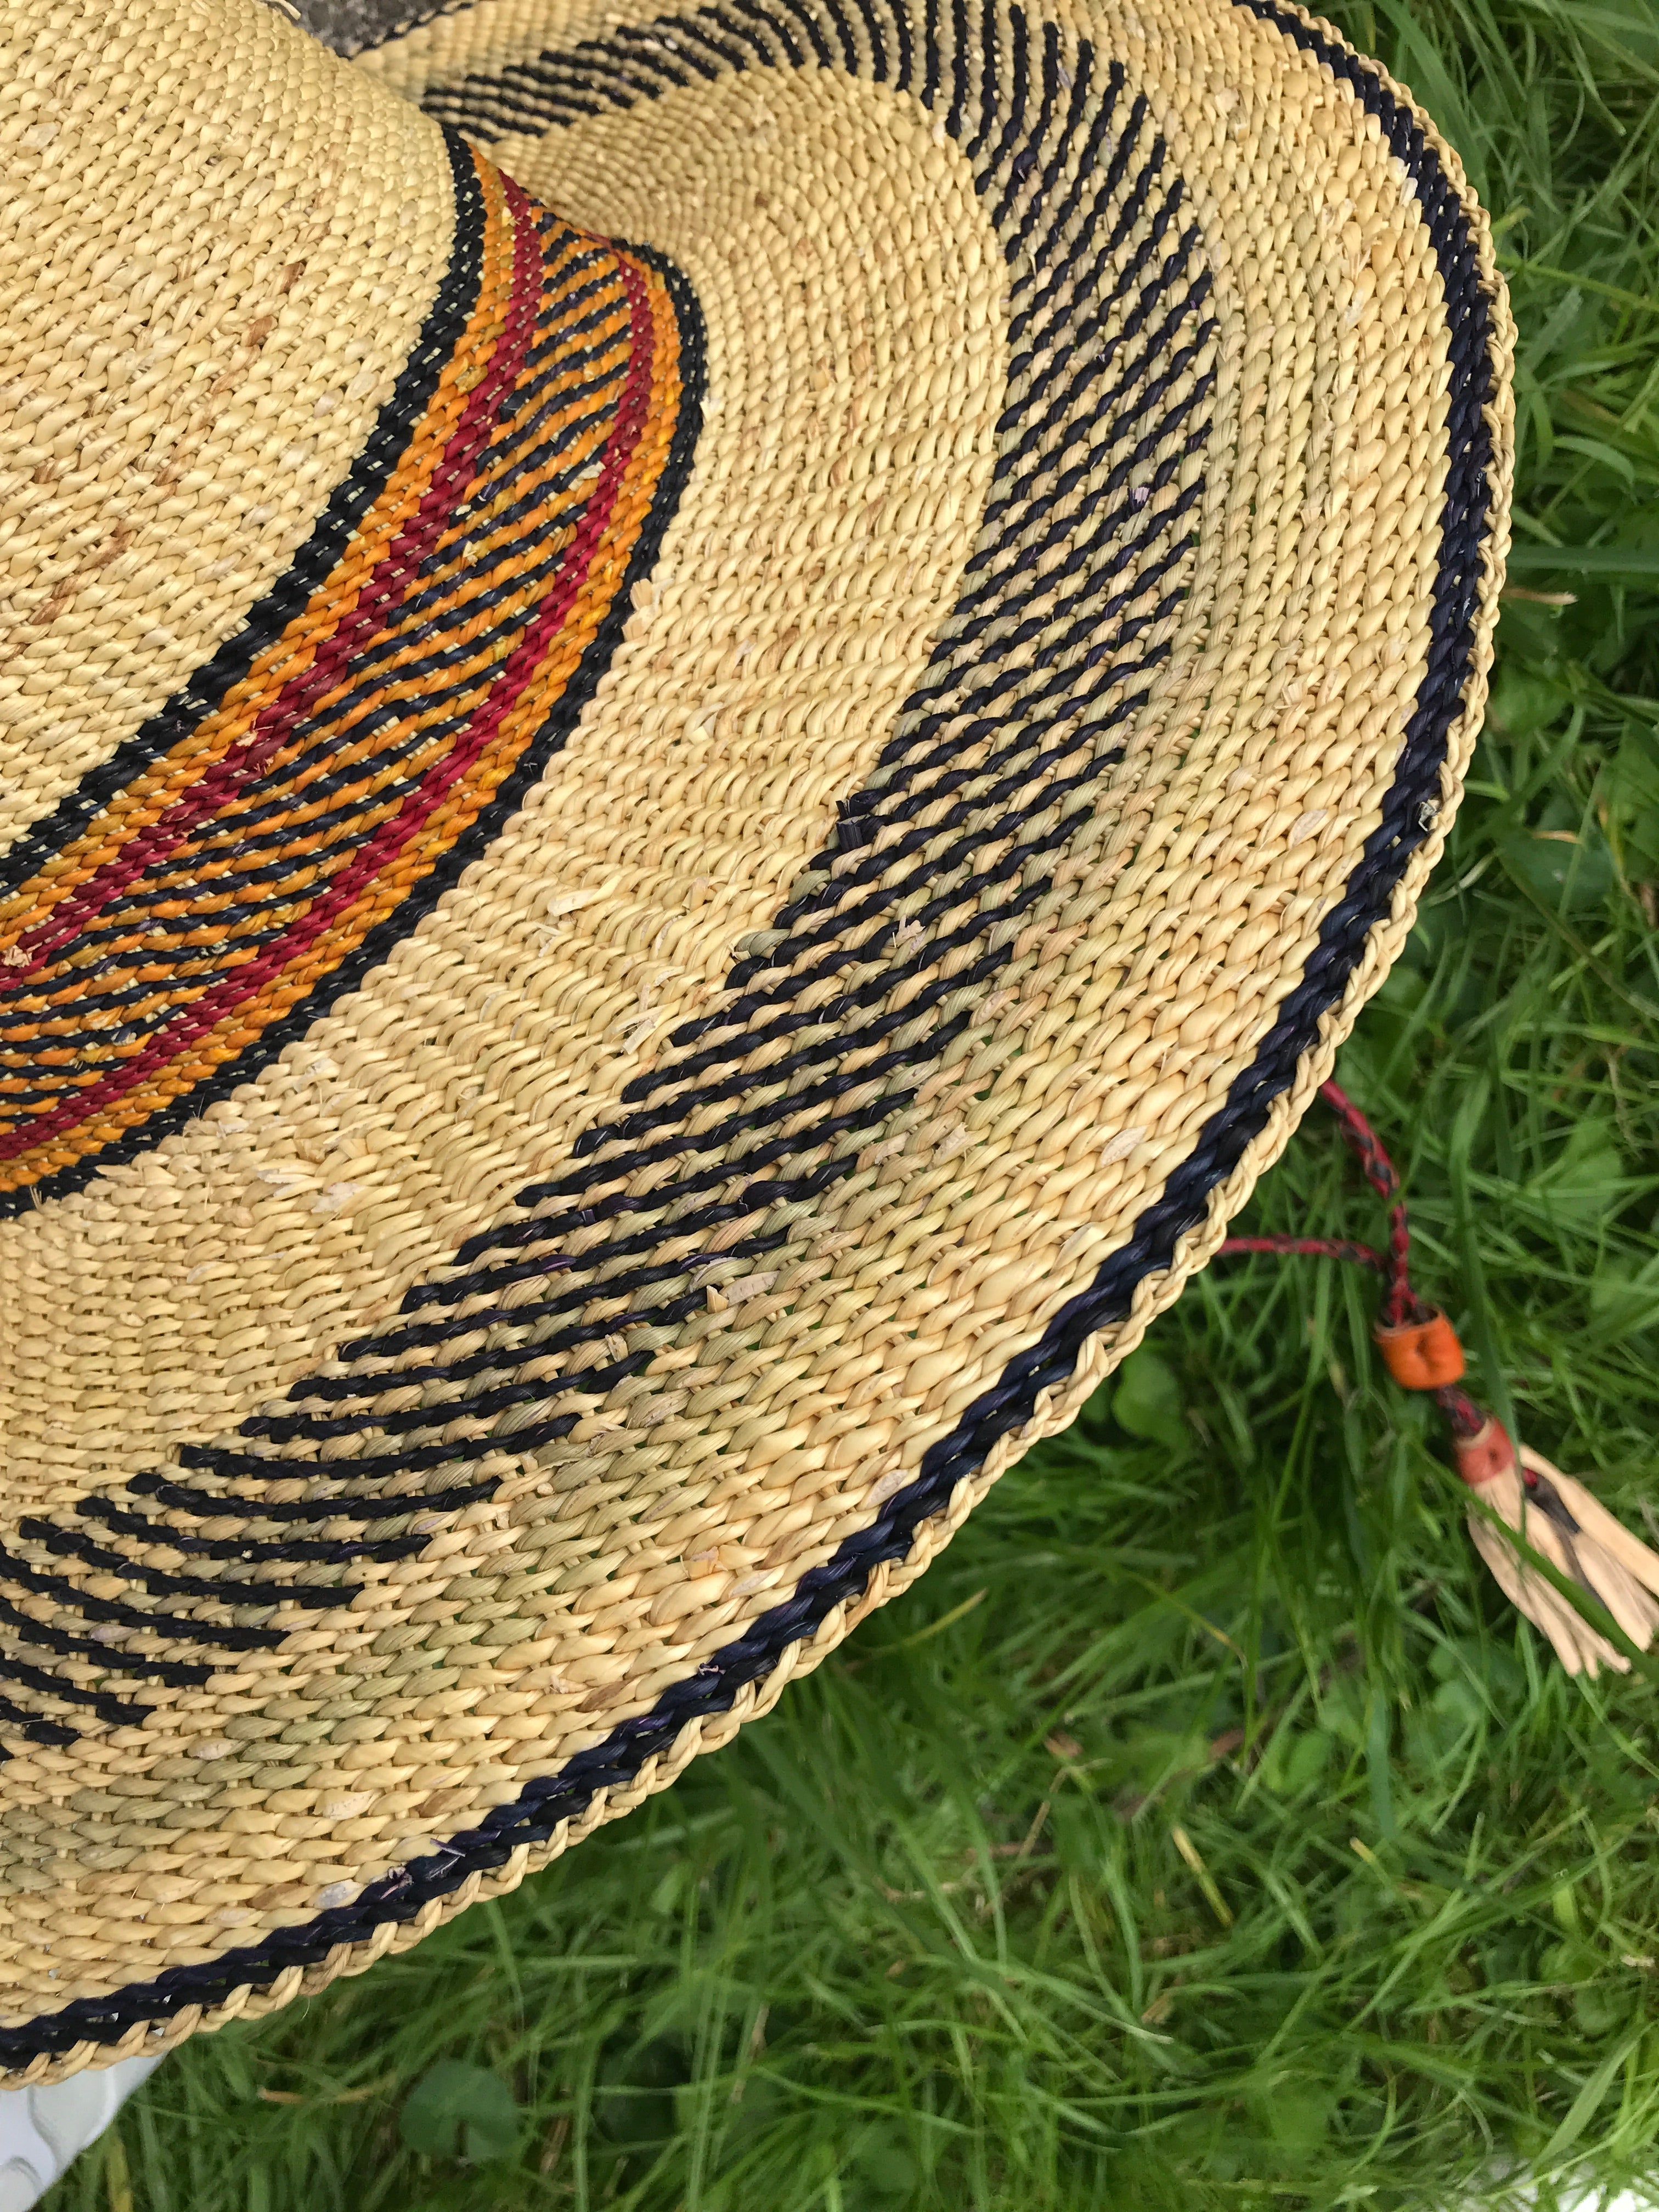 Handwoven straw hat from Ghana, navy blue and yellow pattern